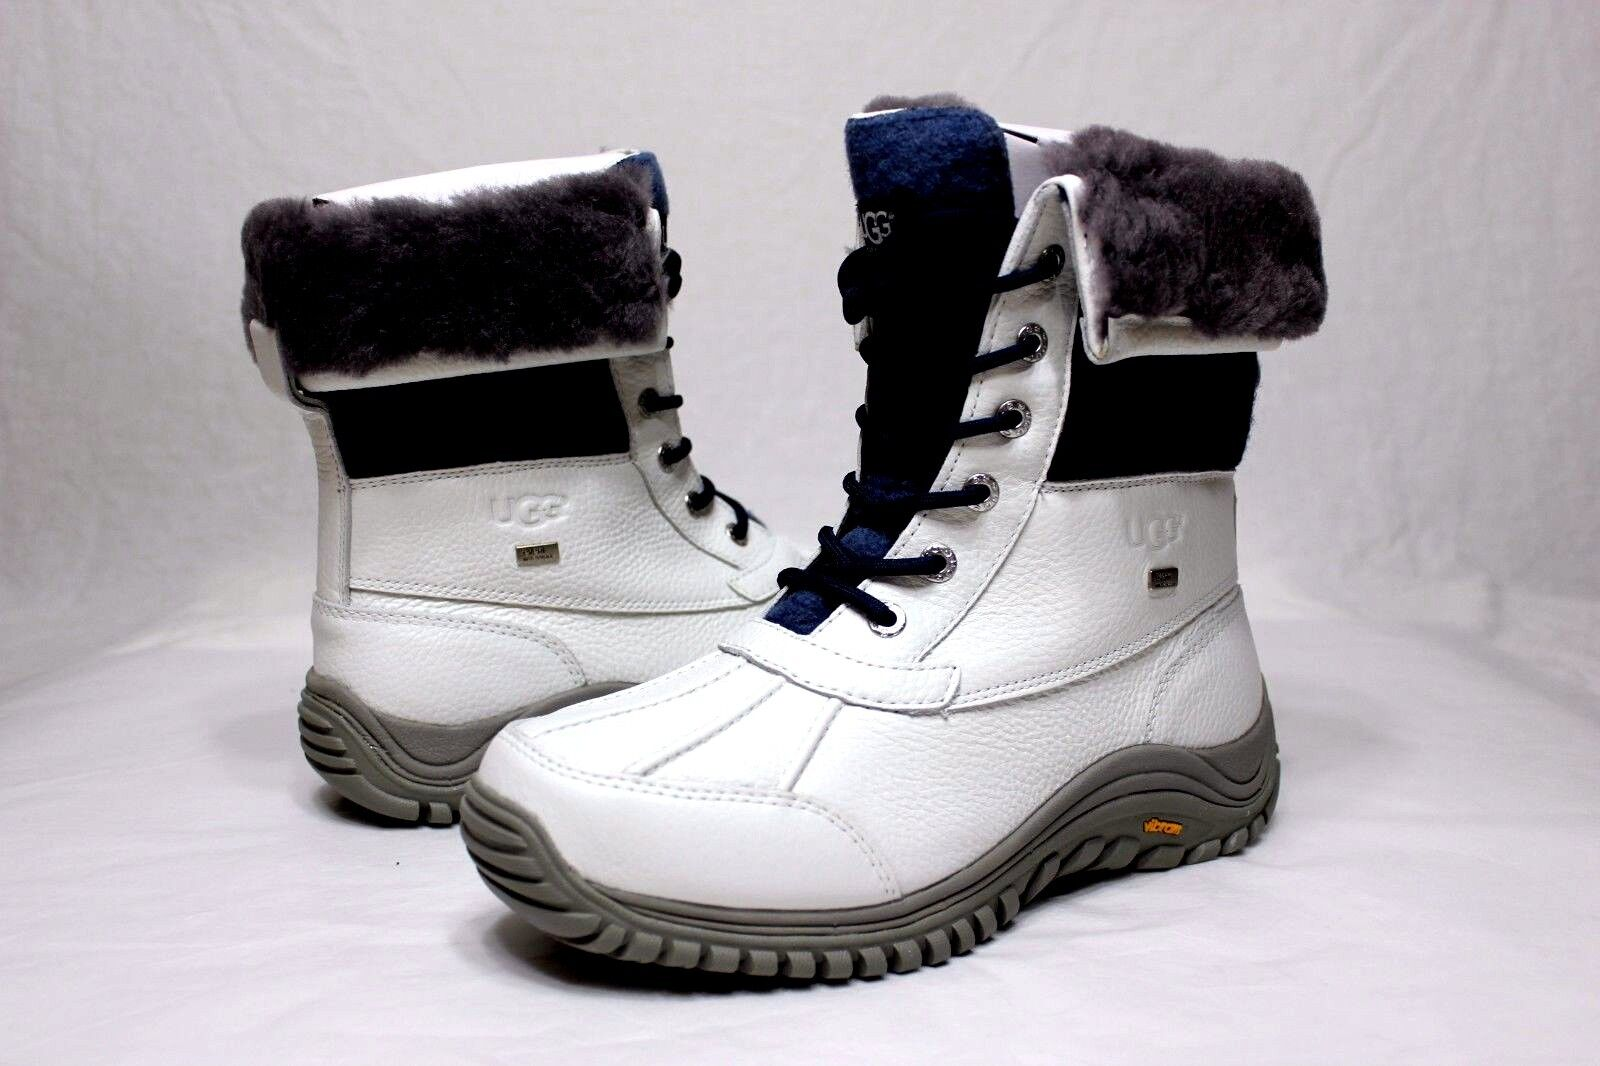 item 3 Ugg Womens Adirondack II White / Blue Color Snow Boots Size 5 US -Ugg Womens Adirondack II White / Blue Color Snow Boots Size 5 US